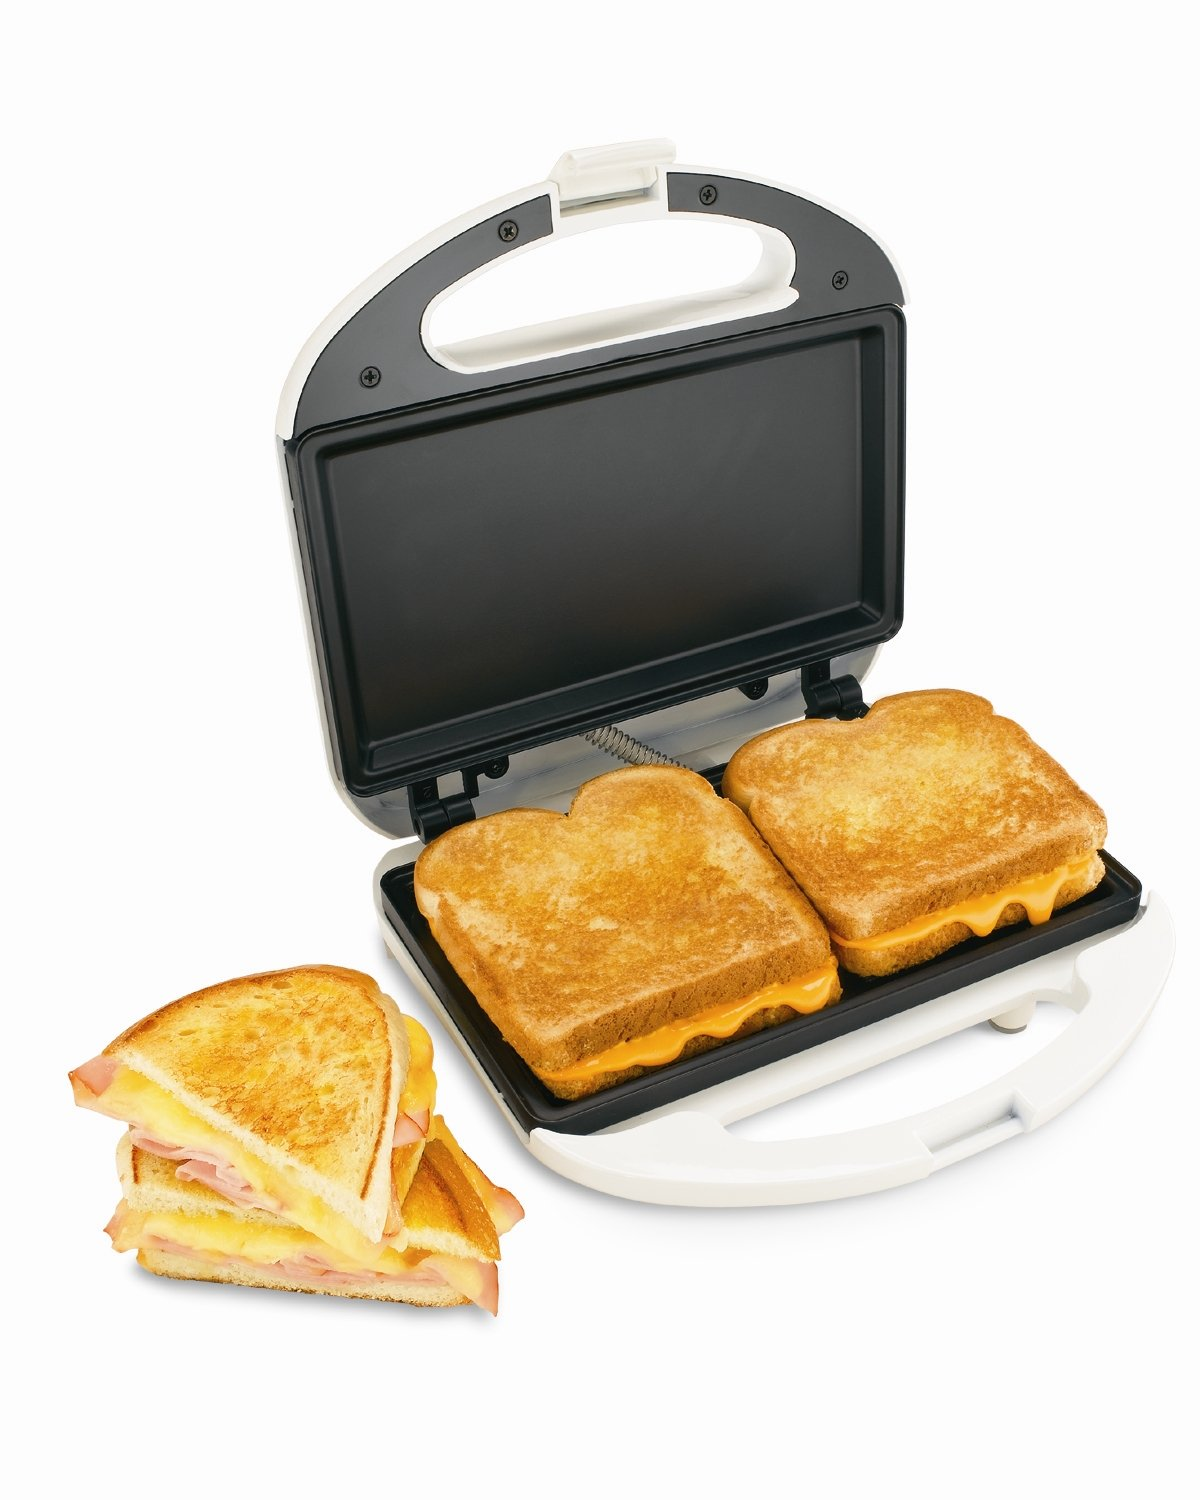 High Speed Low Drage Grilled Cheese Sammich Making Machine